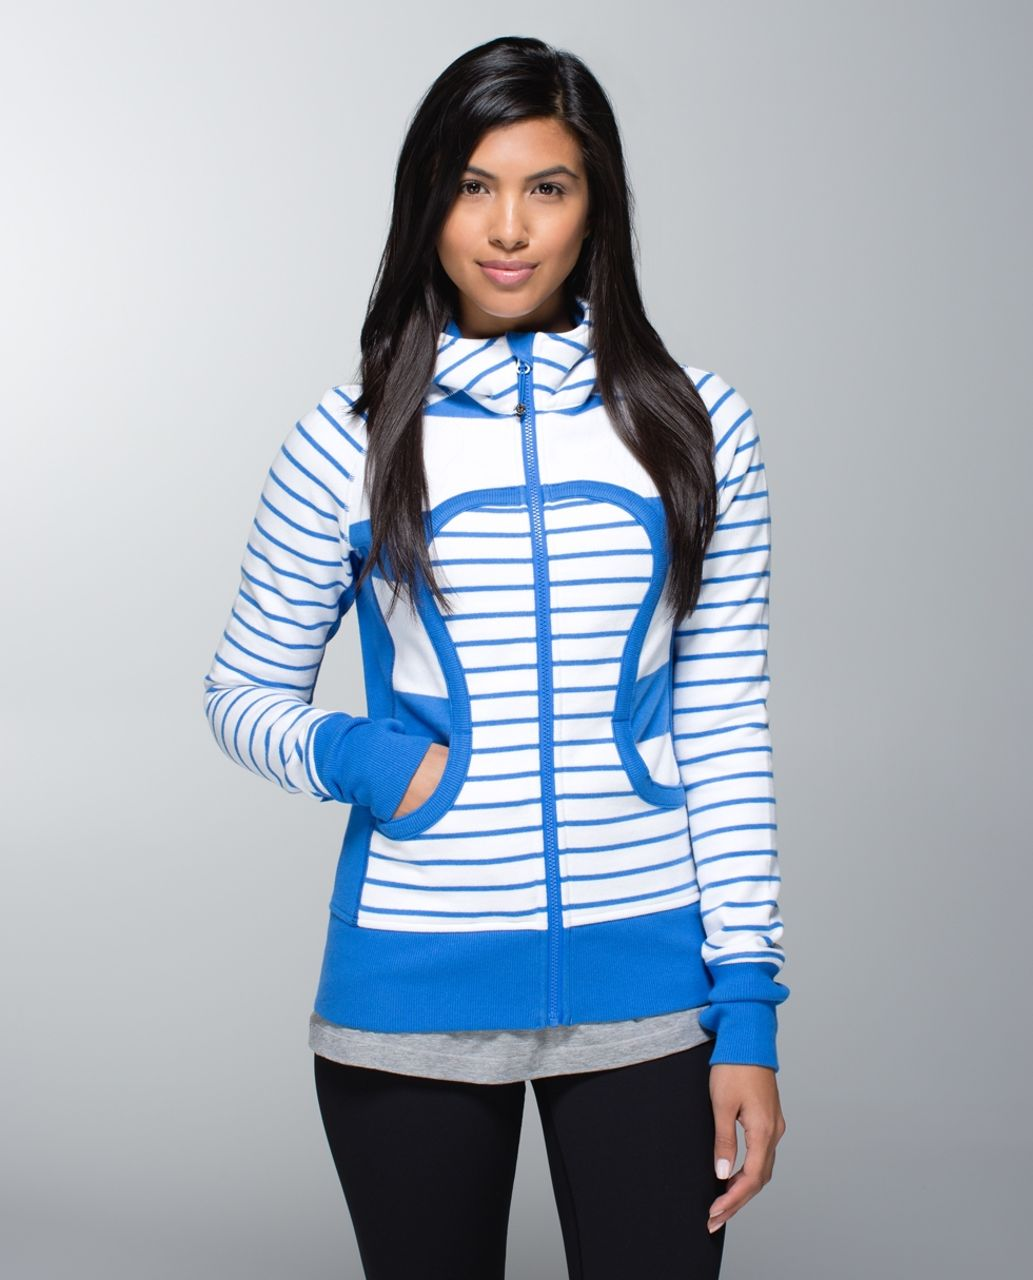 Lululemon Scuba Hoodie II - Stroll Stripe Pipe Dream Blue White / Deauville Stripe Pipe Dream Blue White / Pigment Blue